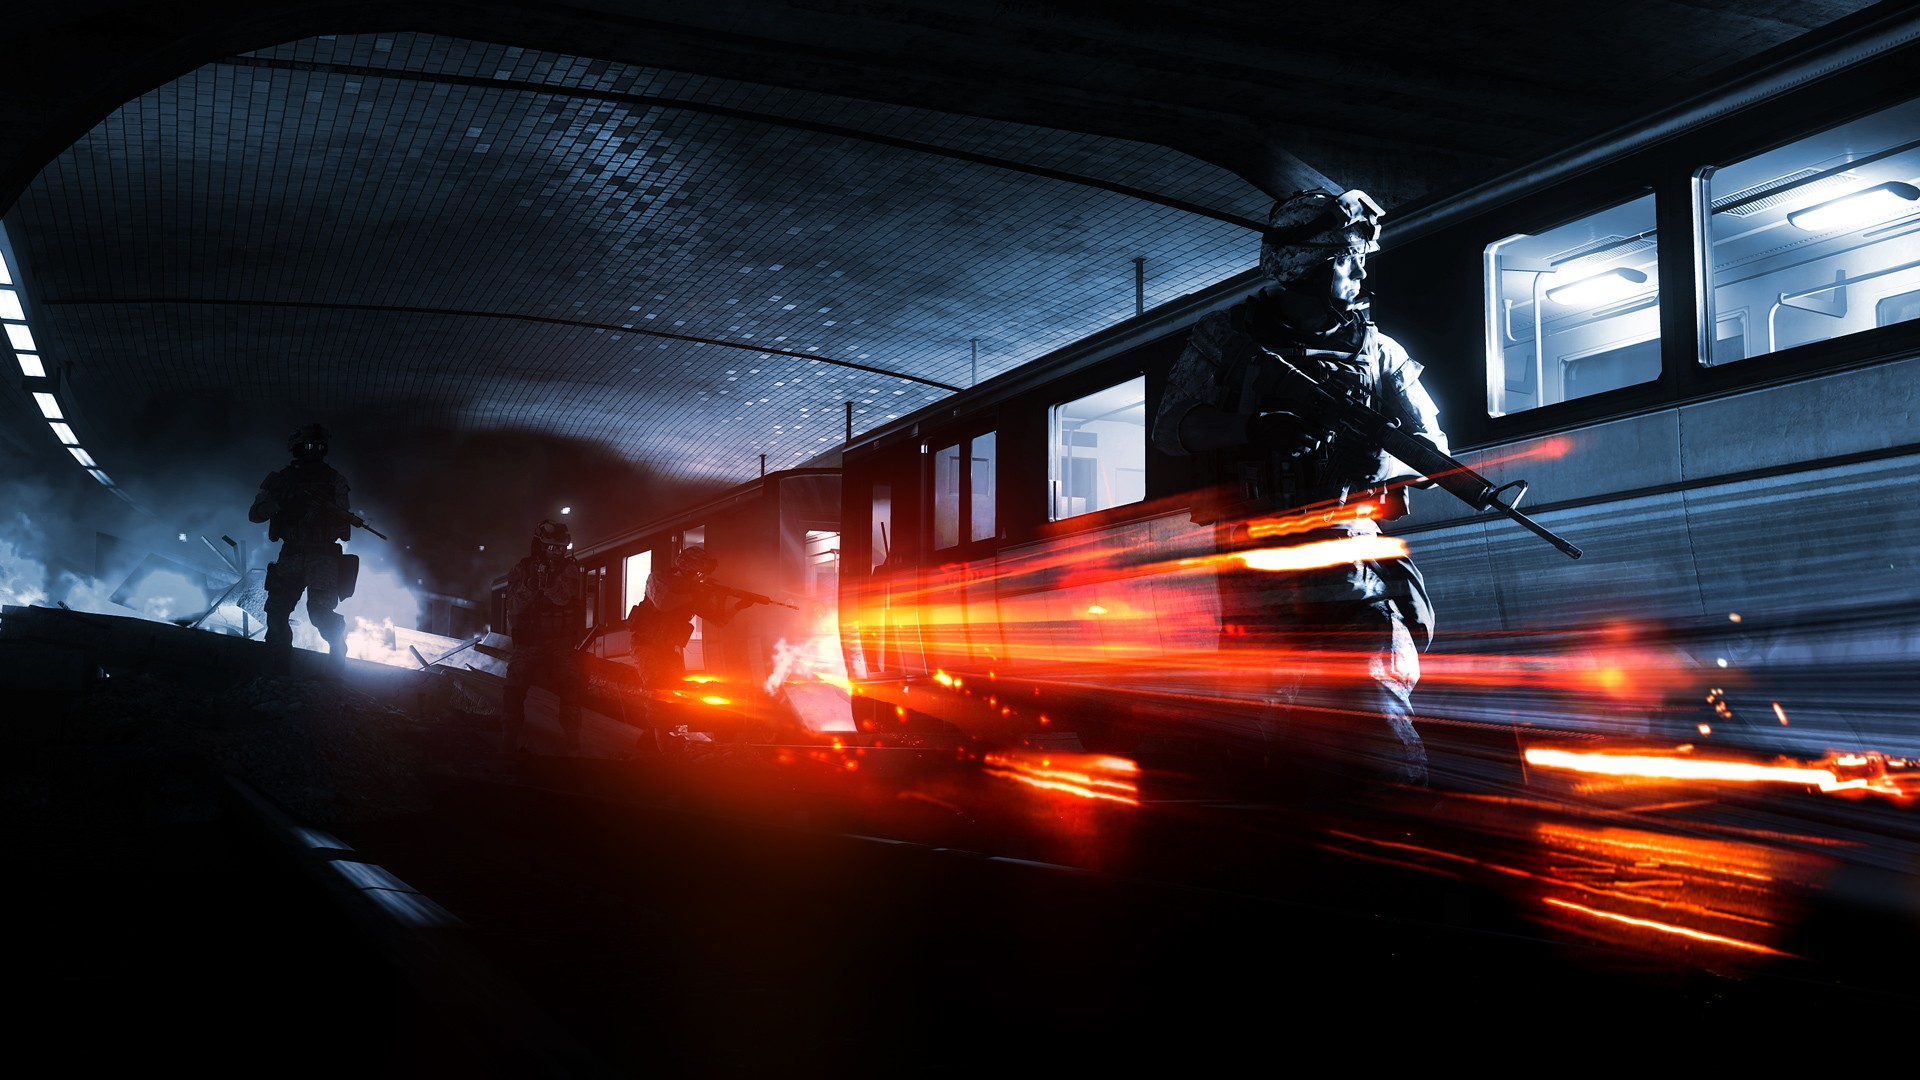 battlefield 3 operation metro #4173323, 1920x1080 | all for desktop